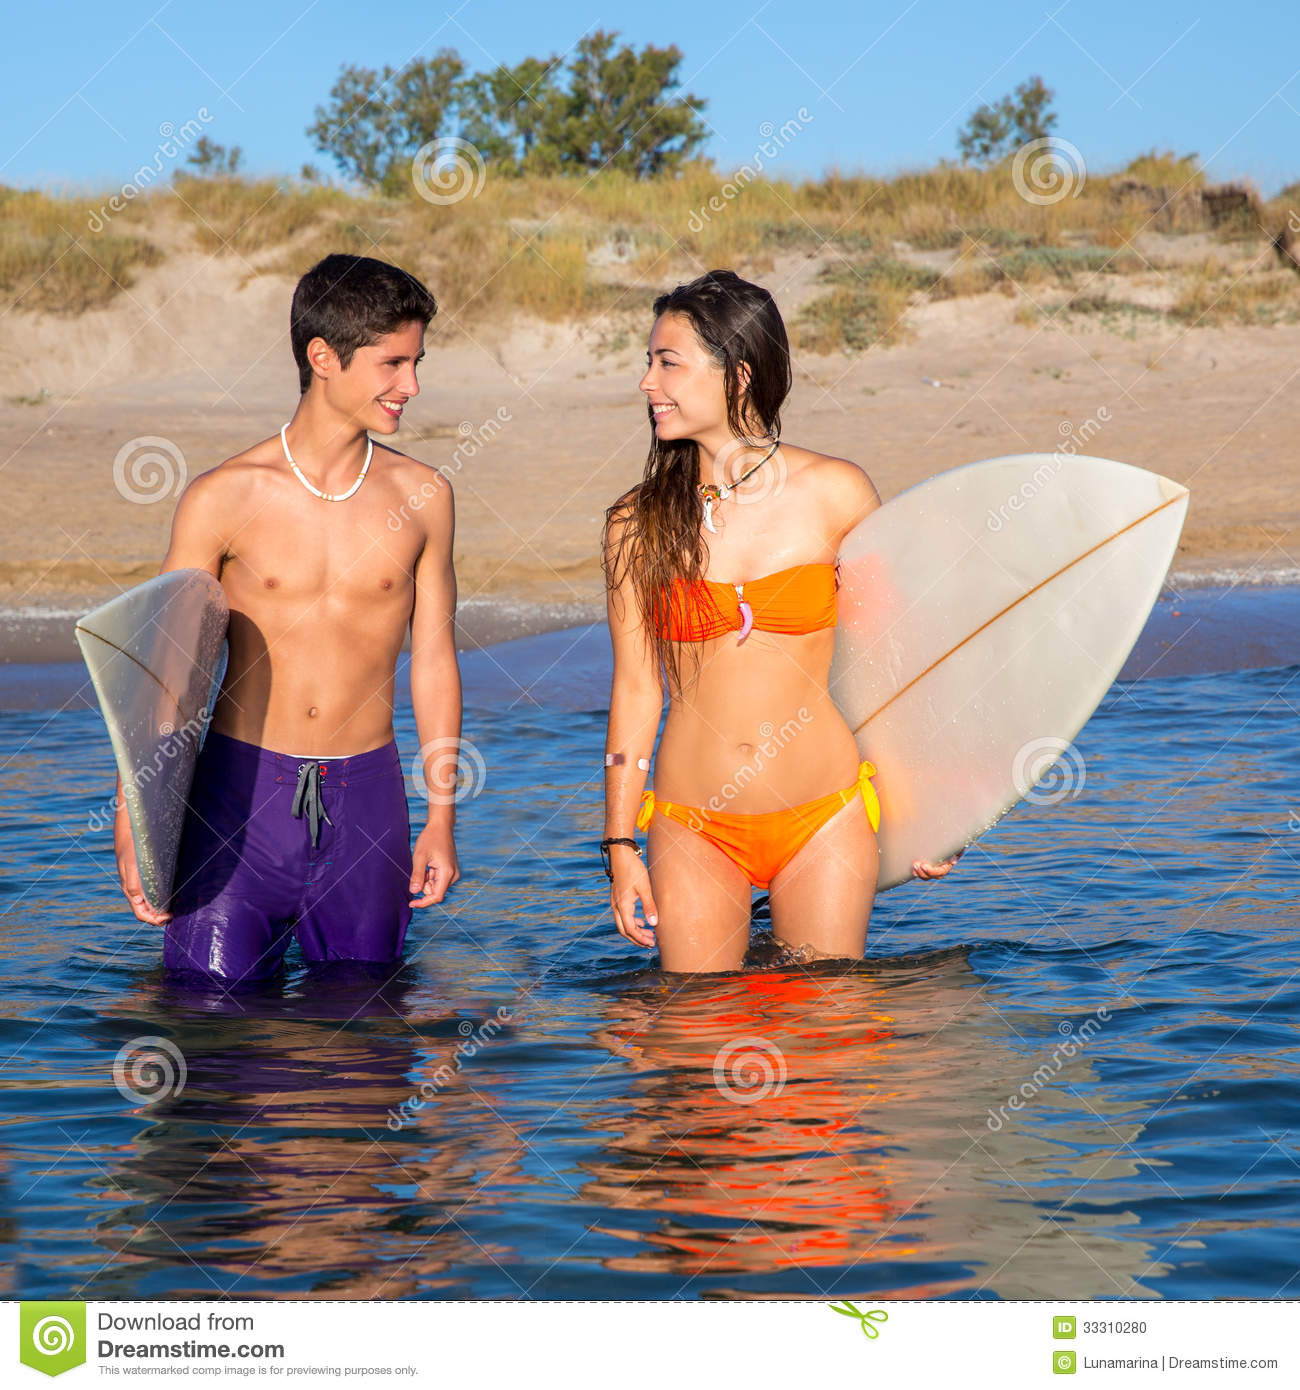 Couple At The Beach Stock Image Image Of Caucasian: Happy Teenager Surfer Couple On The Beach Shore Stock